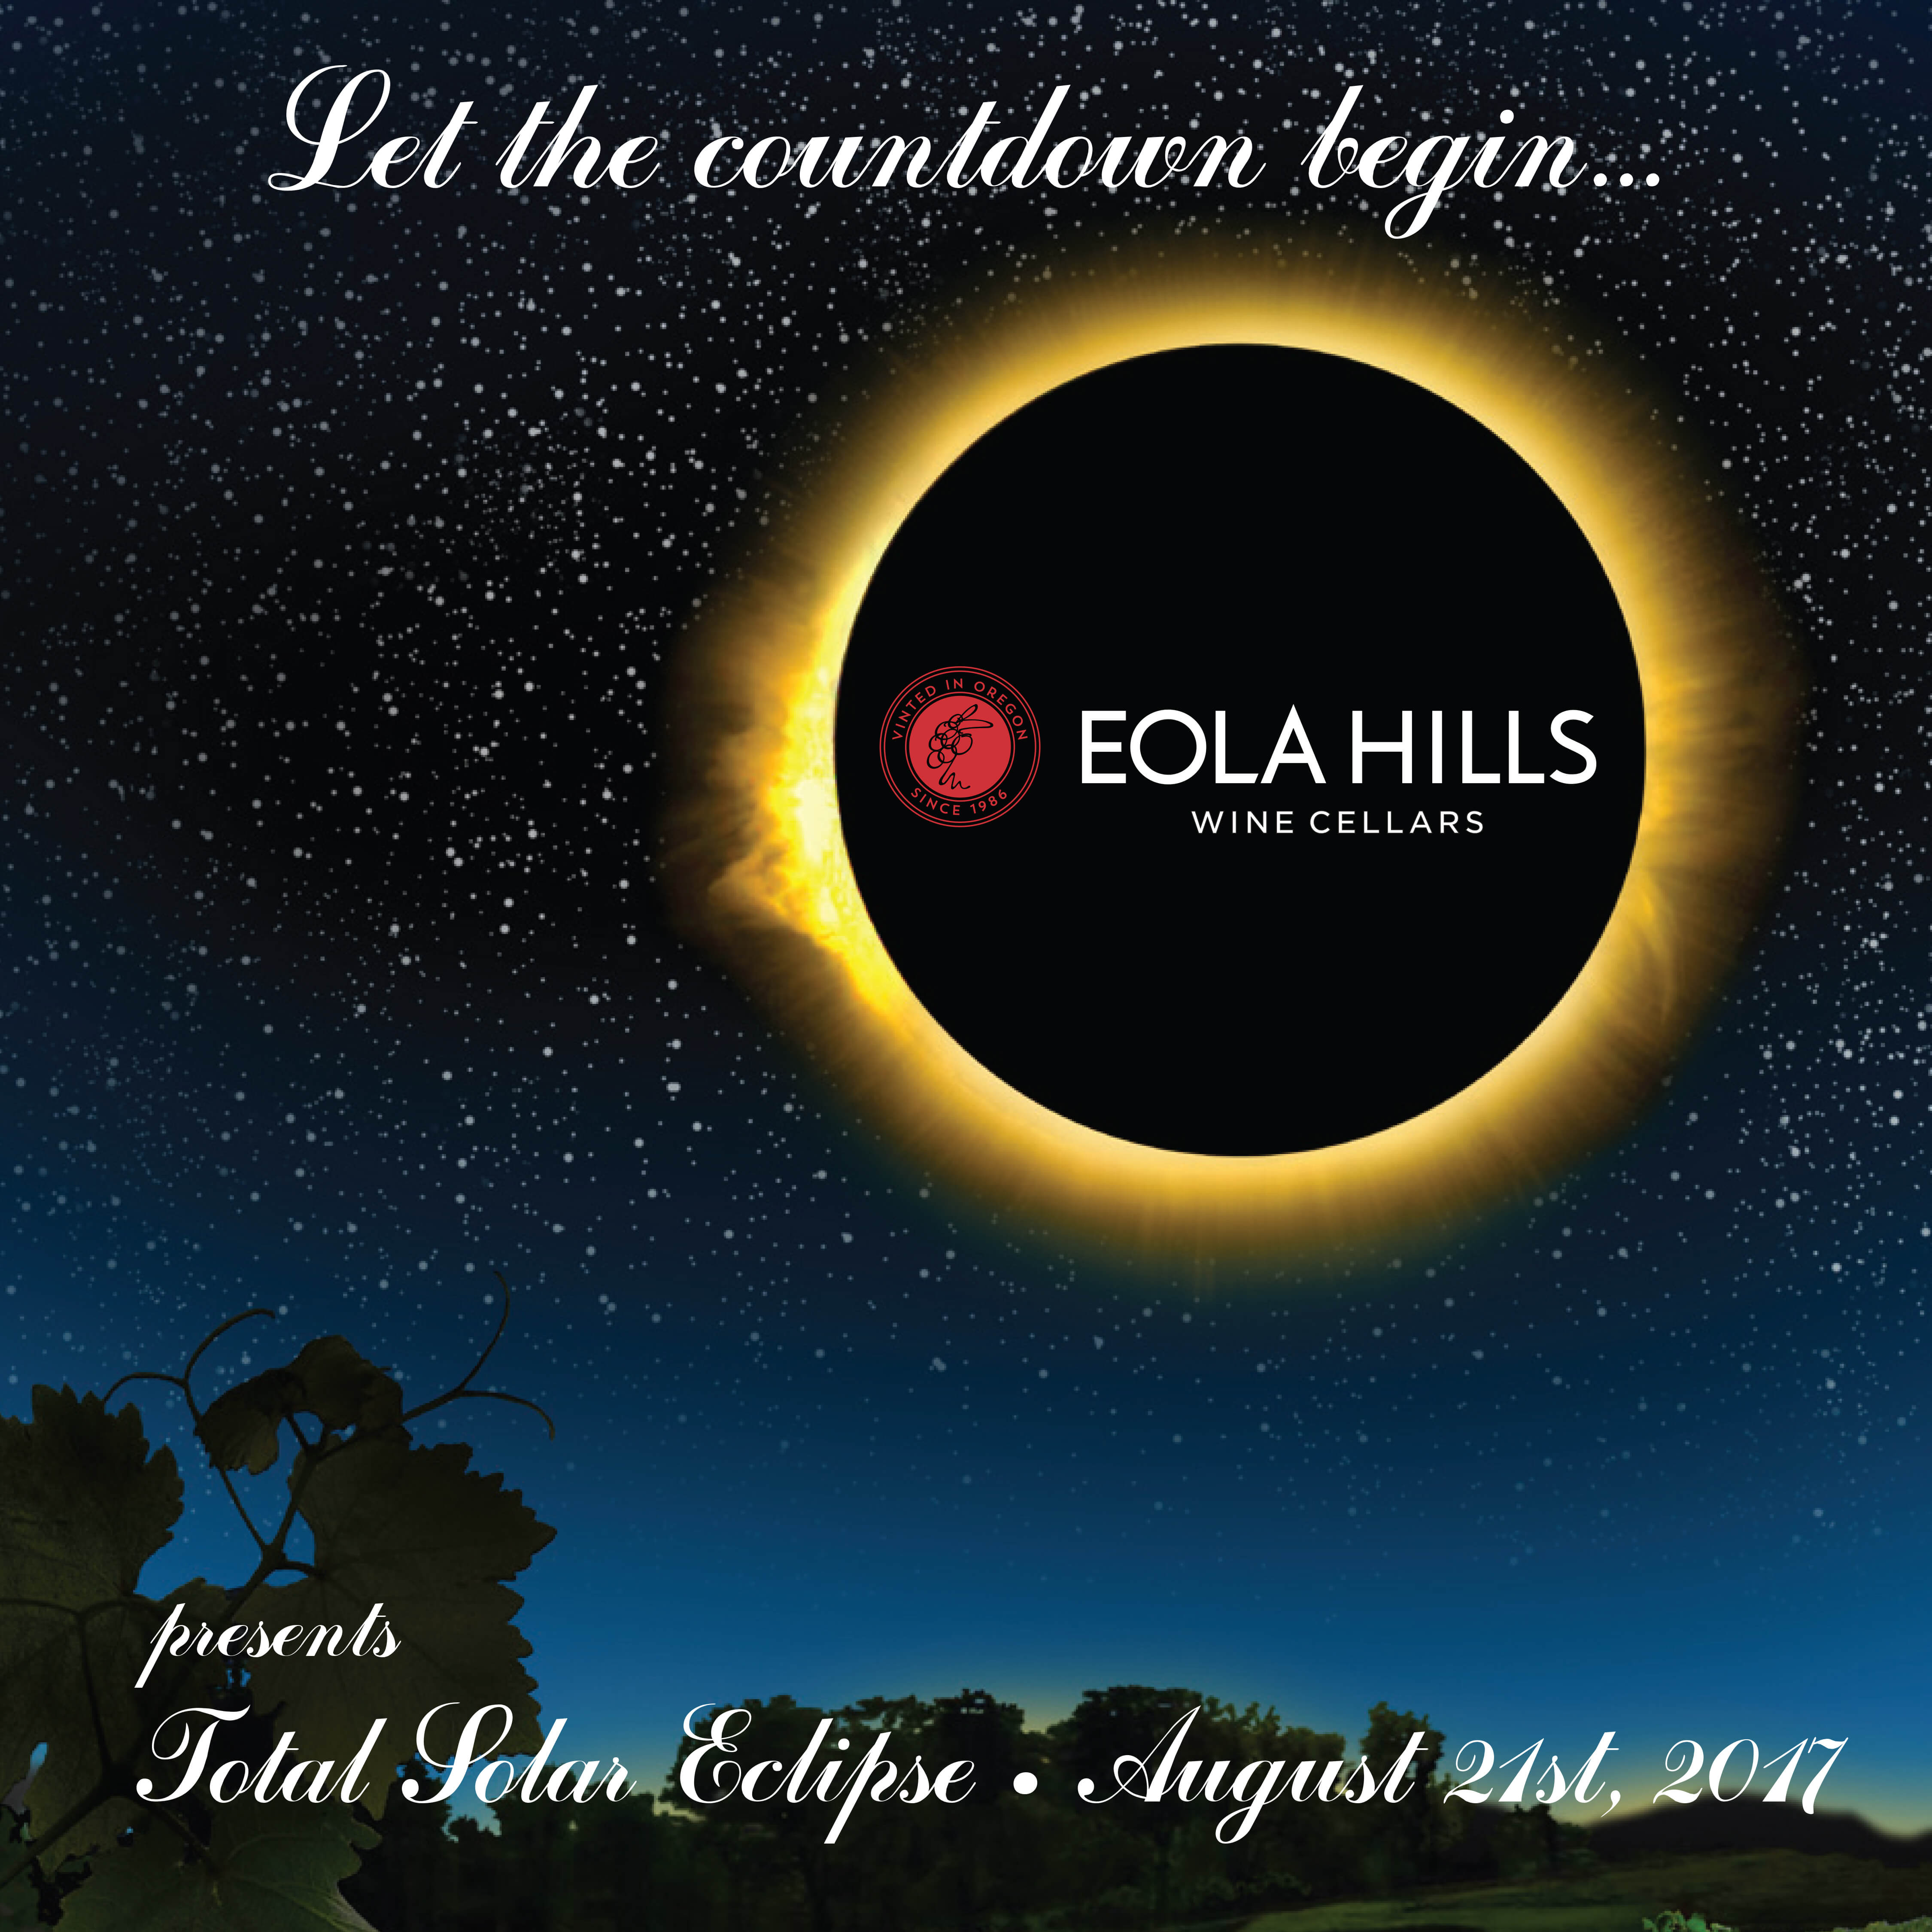 The Great American Eclipse Aug 19-21, 2017